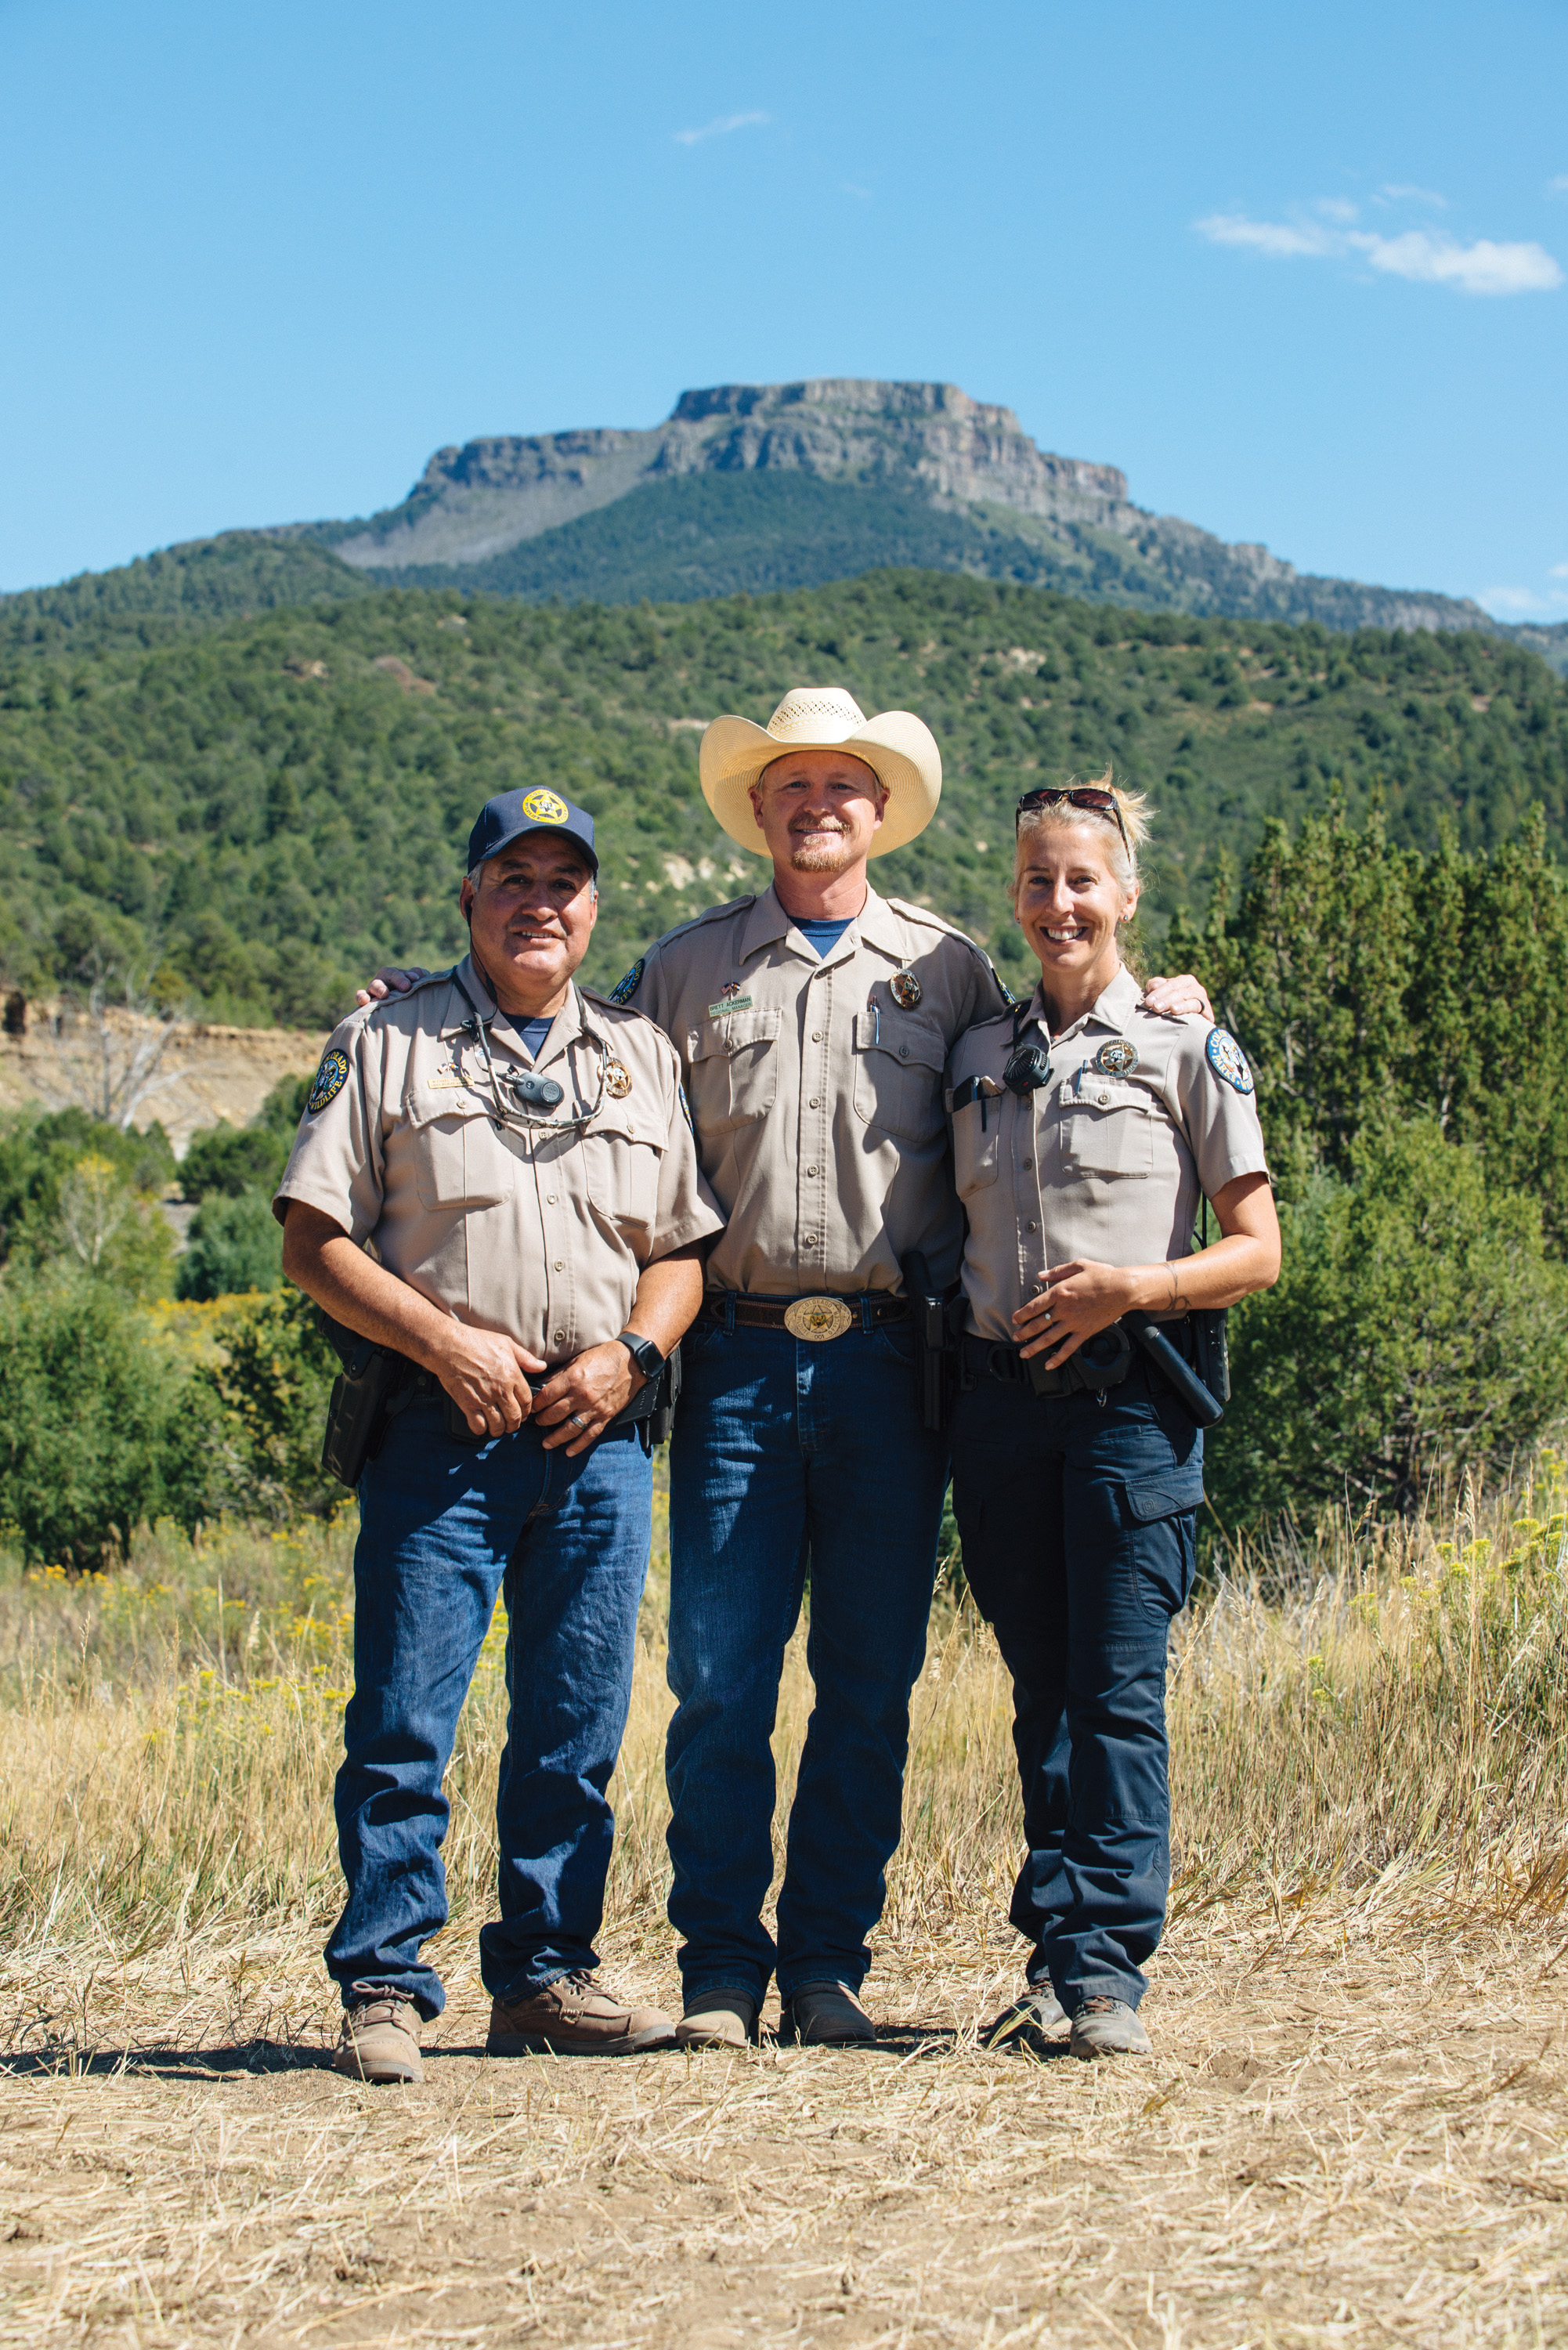 From left: Area Wildlife Manager Michael Trujillo, Southeast Regional Manager Brett Ackerman and Park Manager Crystal Dreiling.